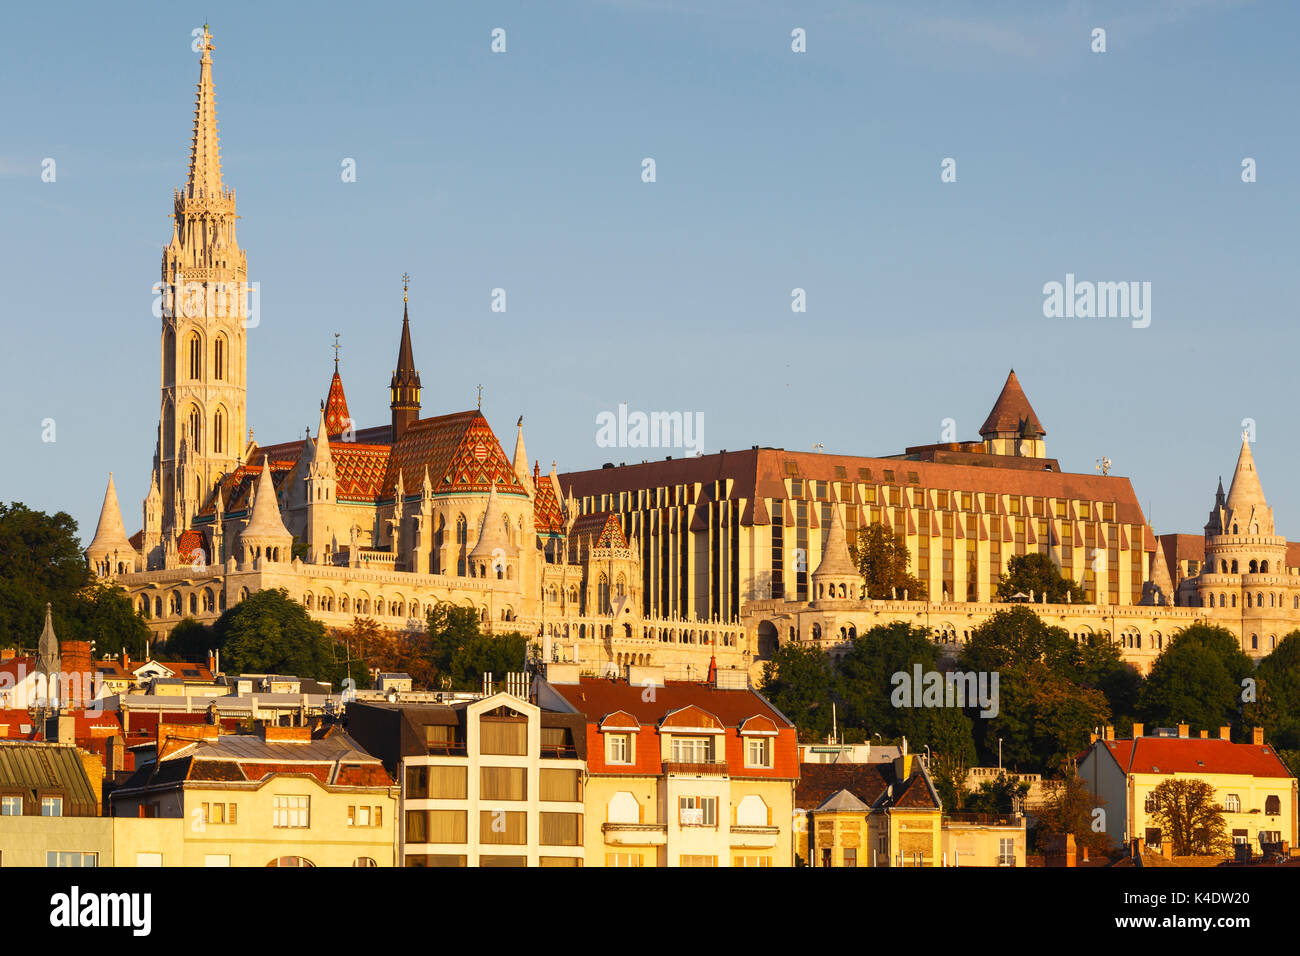 Morning view of historic city centre of Buda, Hungary. - Stock Image